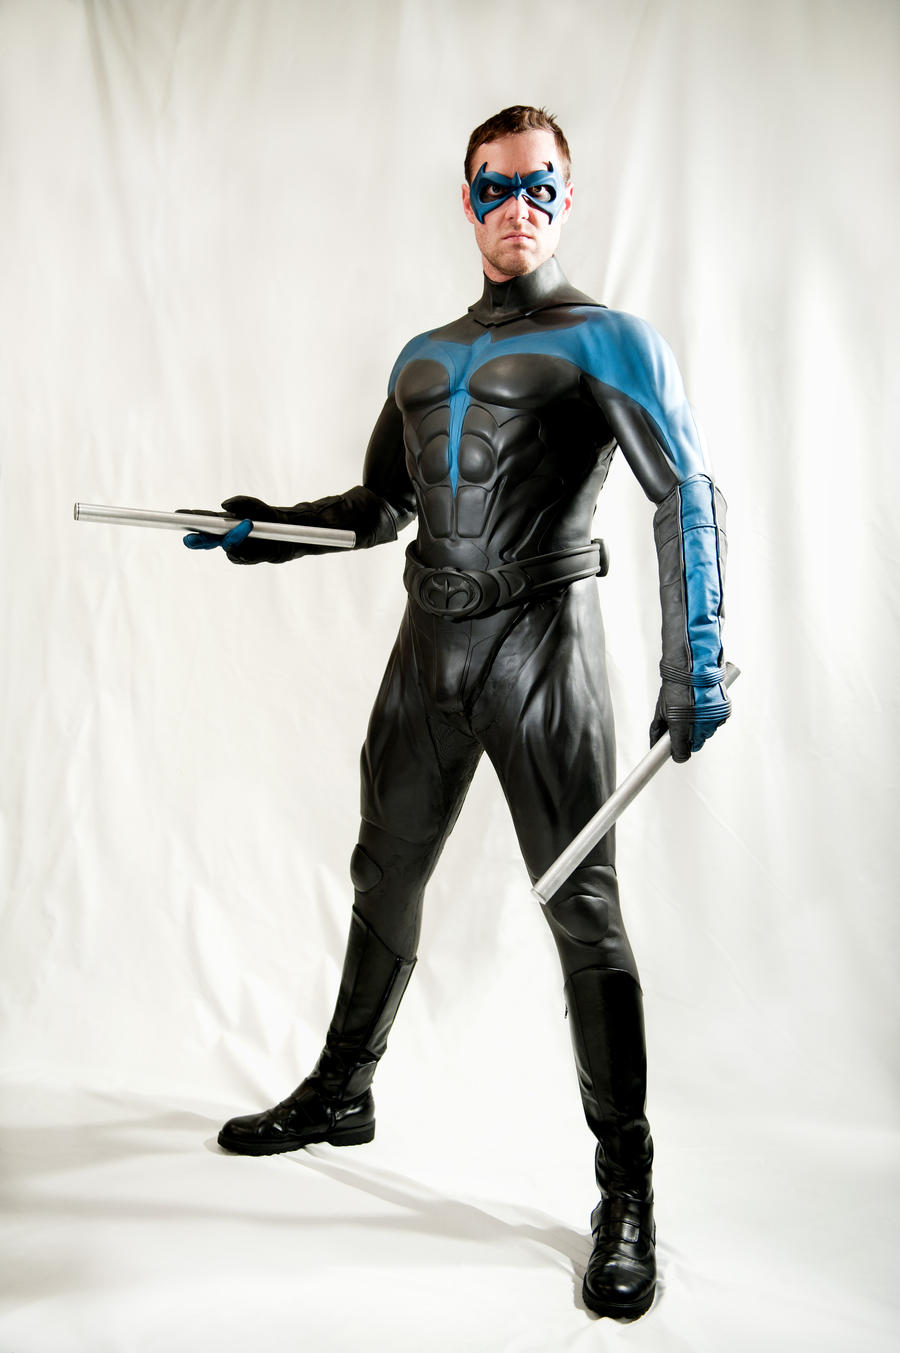 NIGHTWING 1.0 by COSandFX on DeviantArt